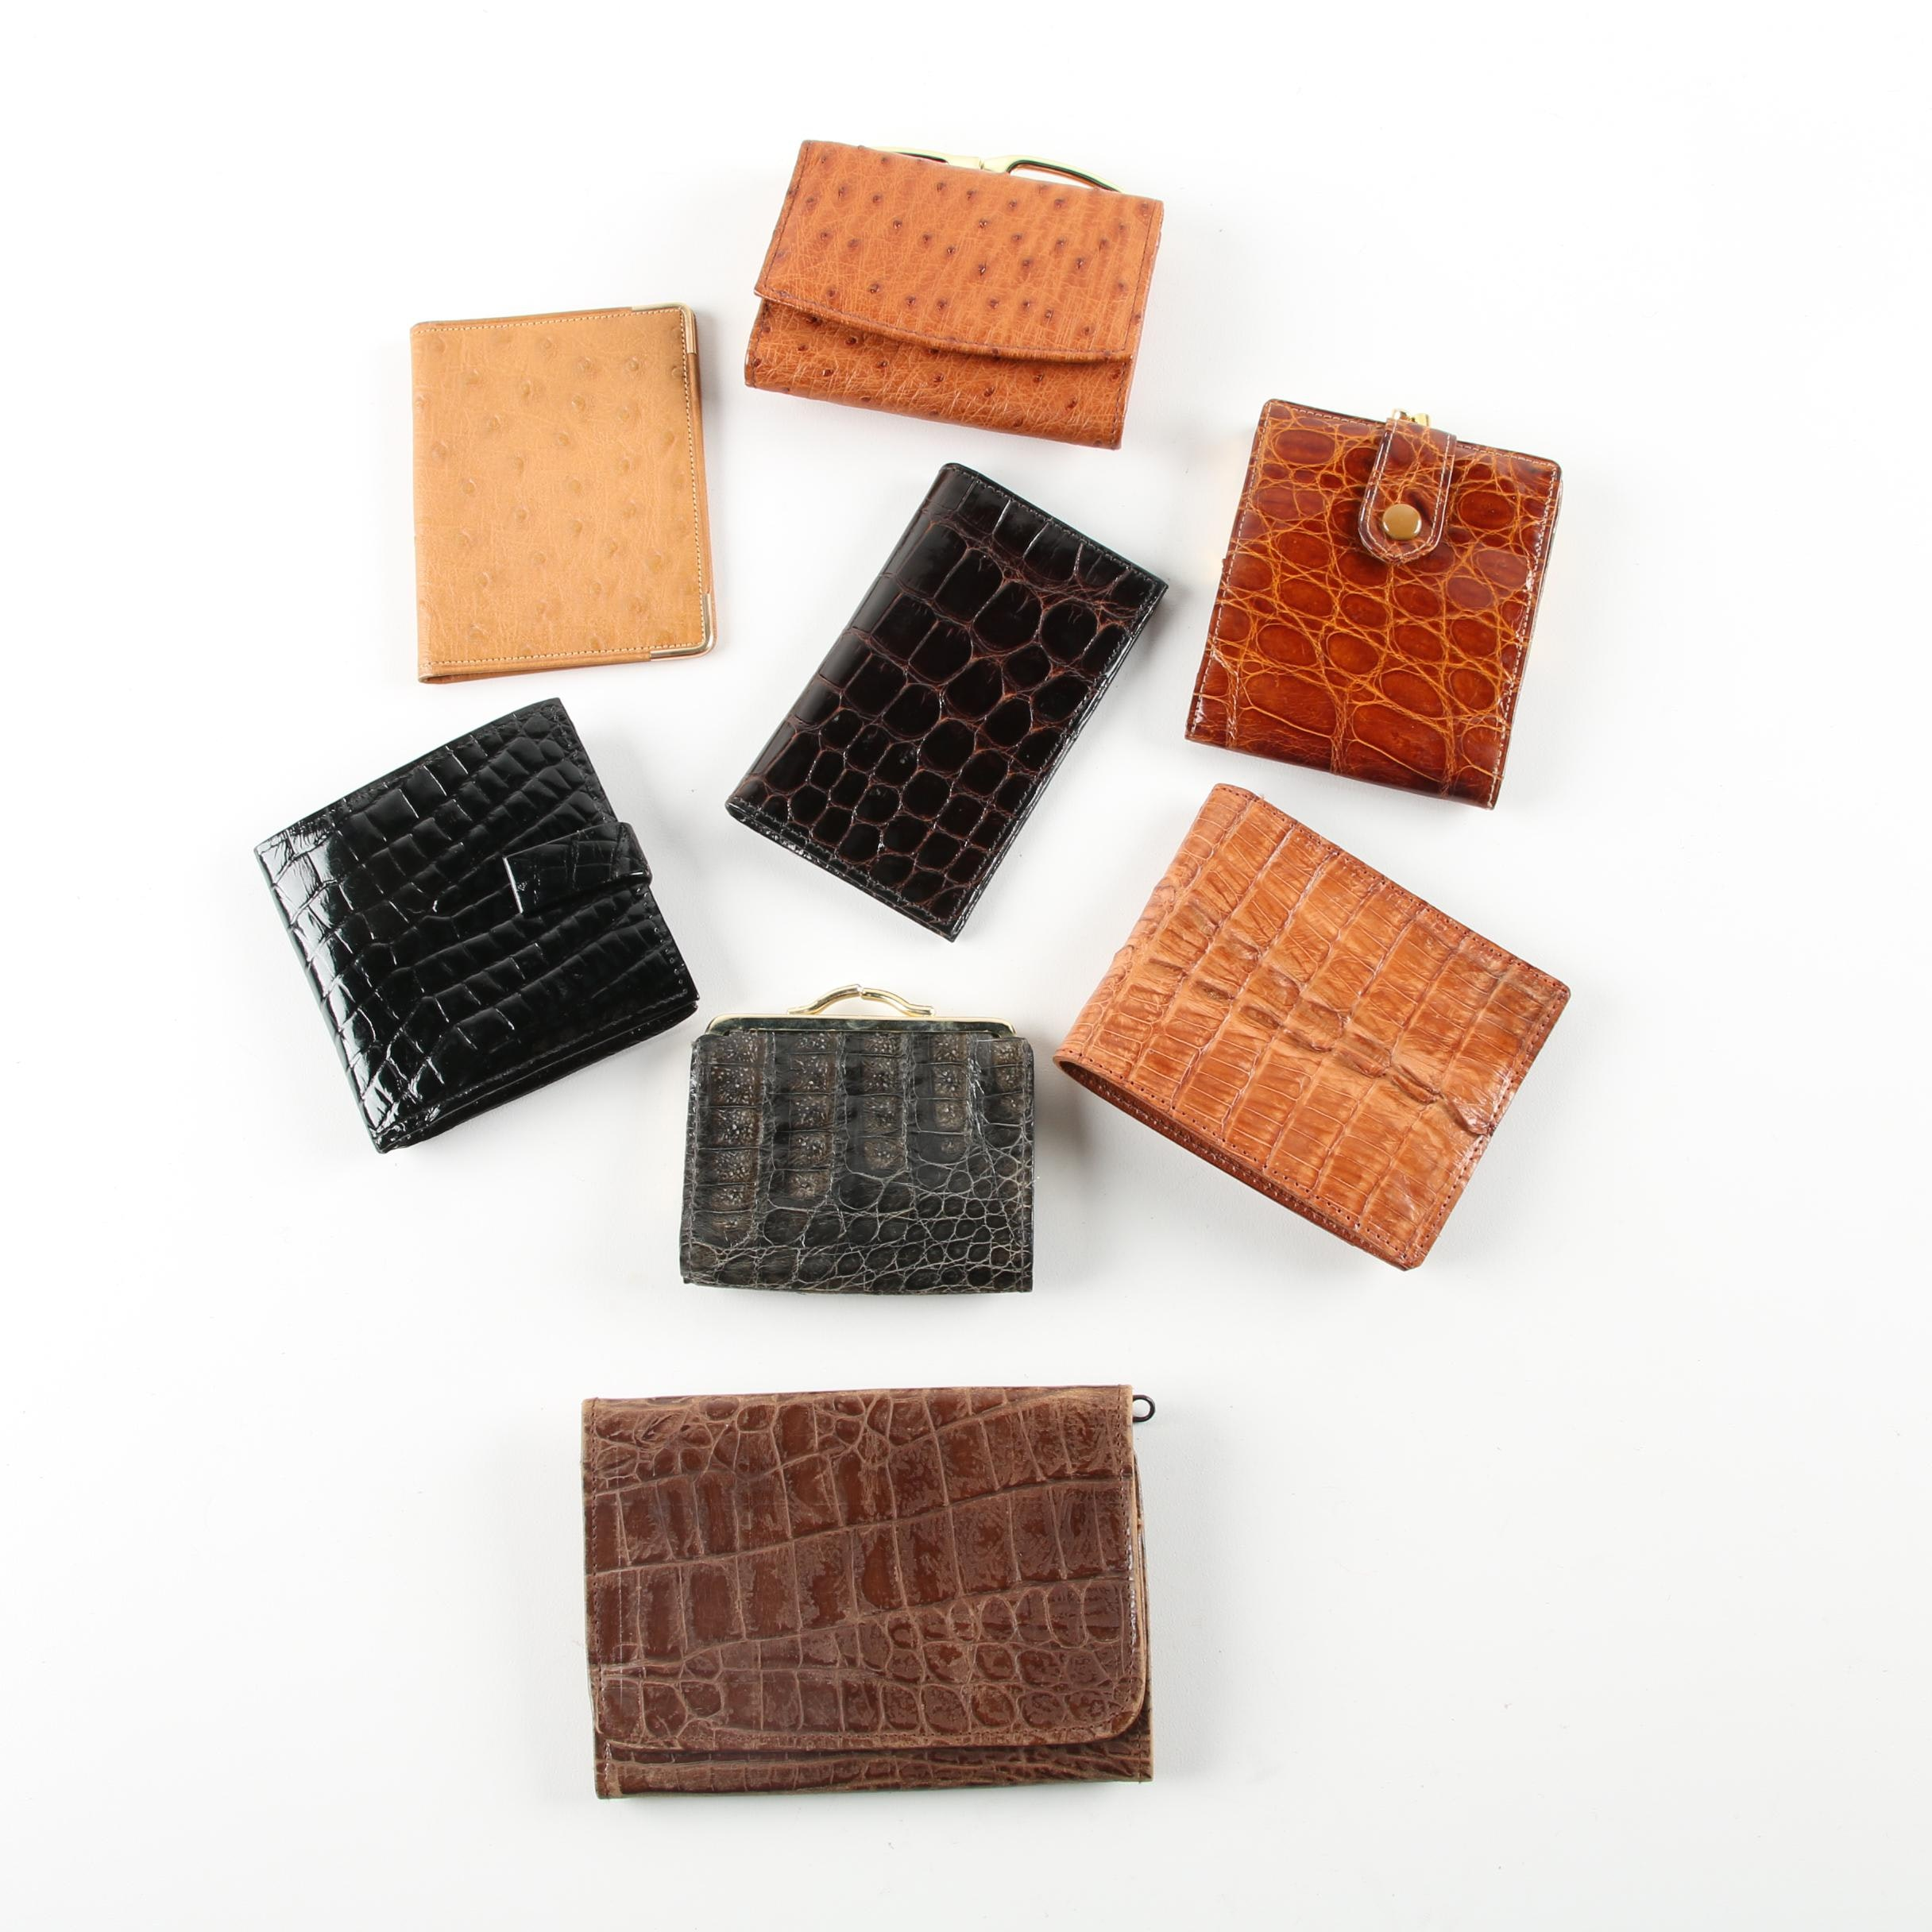 Reptile Skin, Ostrich Skin, and Embossed Leather Wallets Including Cole Haan